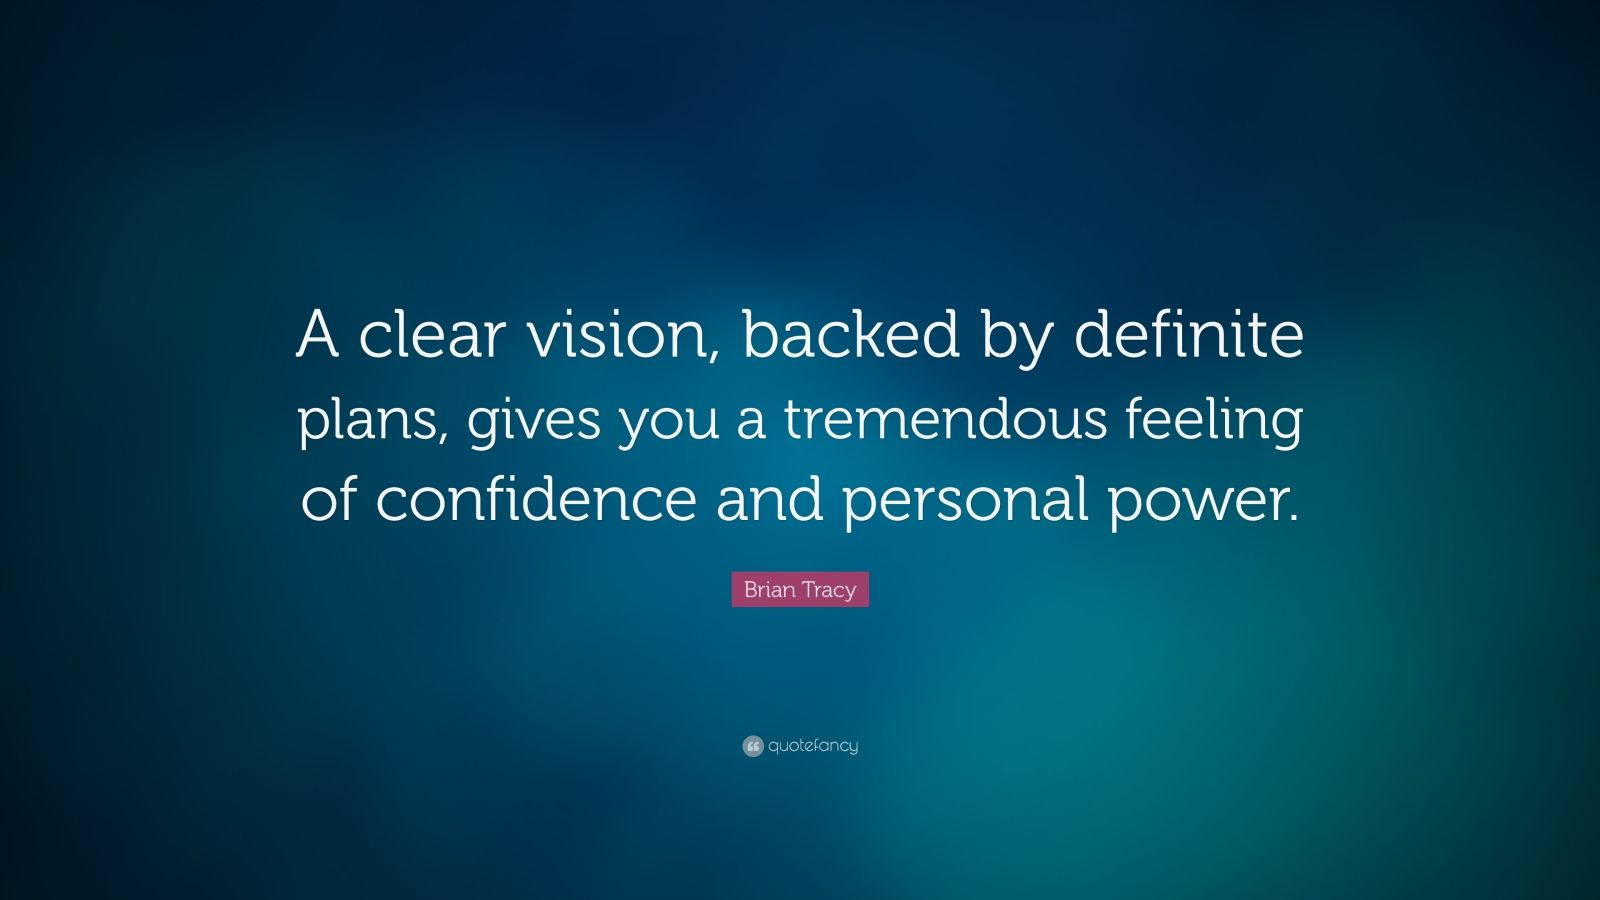 Persistence Quotes Wallpapers Brian Tracy Quote A Clear Vision Backed By Definite